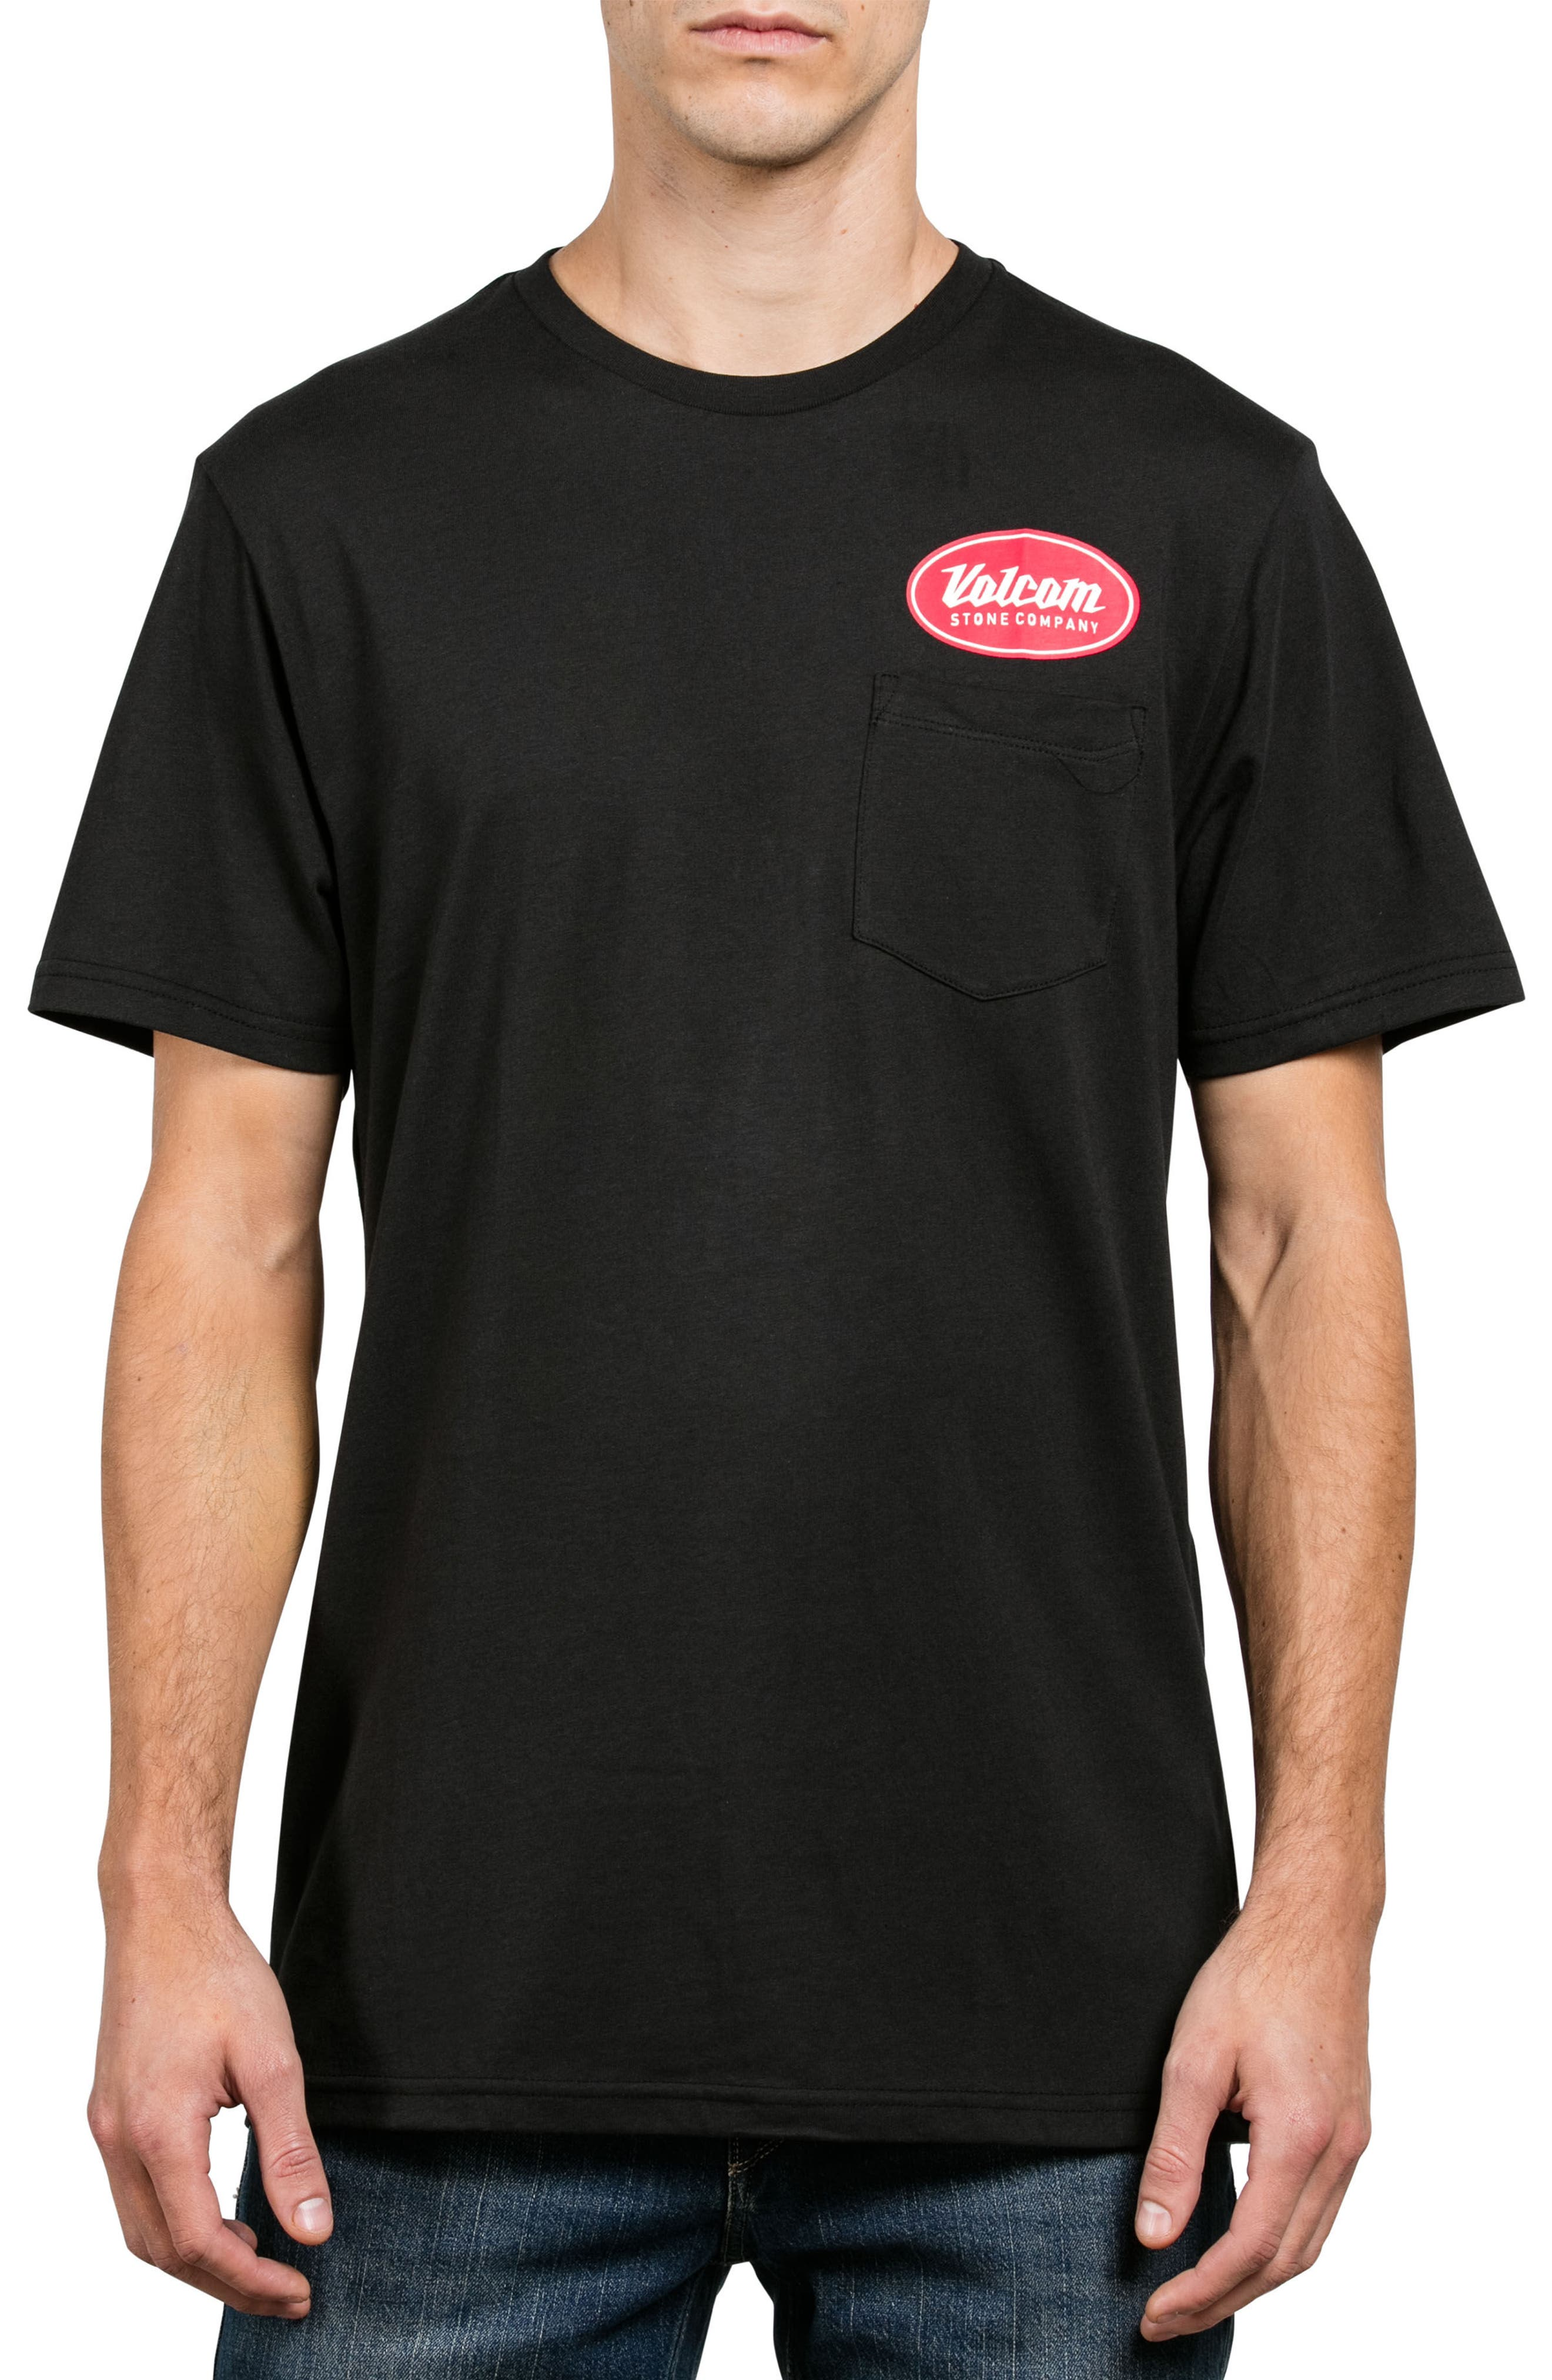 Alternate Image 1 Selected - Volcom Foundry Logo Graphic Pocket T-Shirt